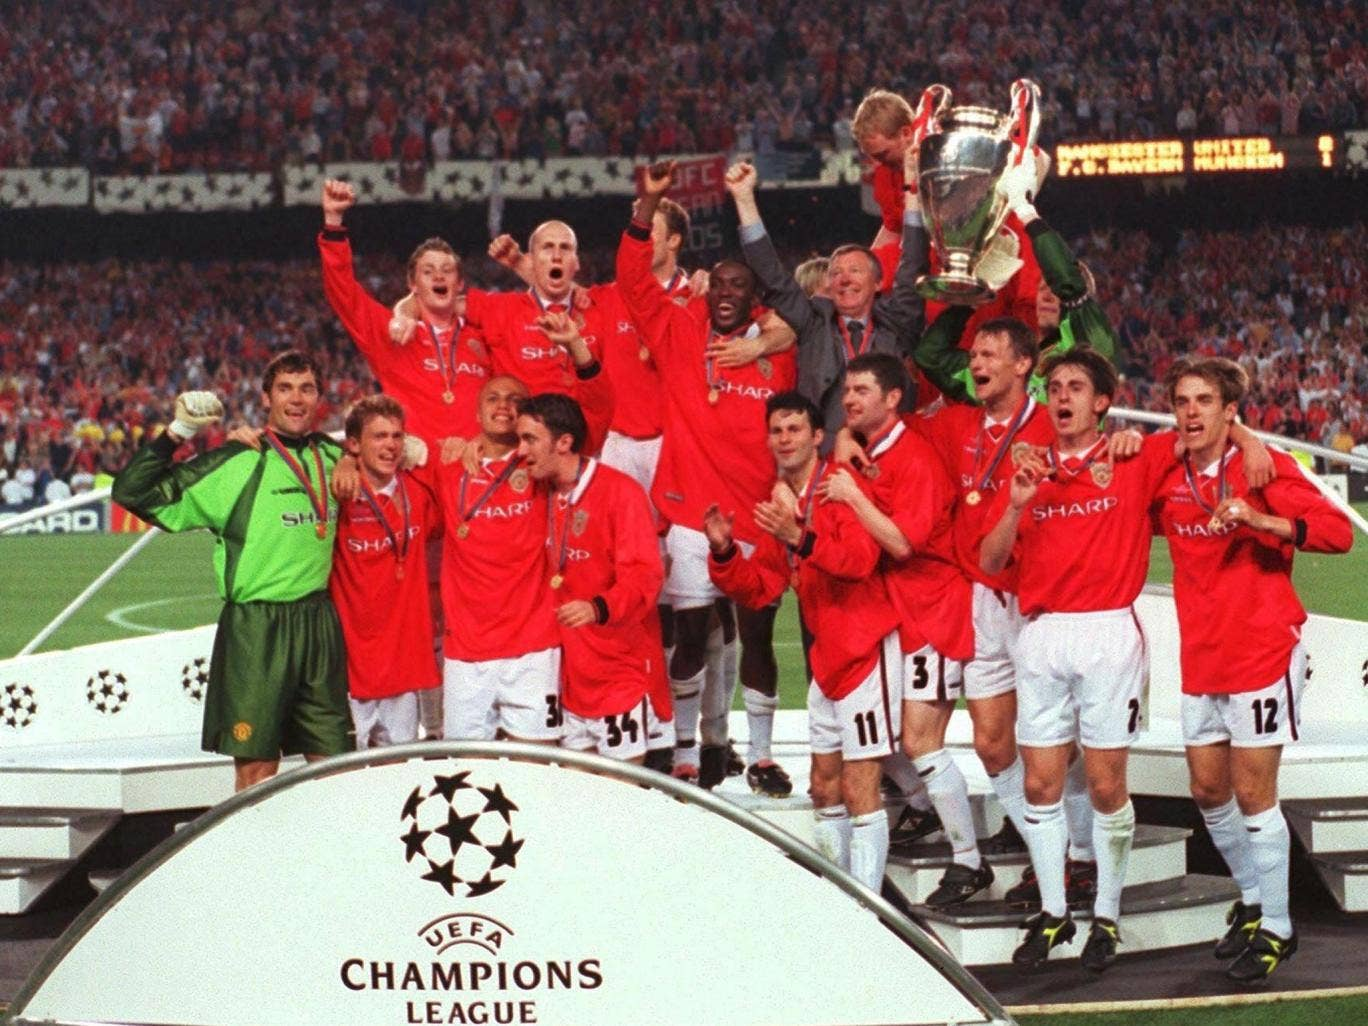 Manchester United celebrate their 1999 Champions League success